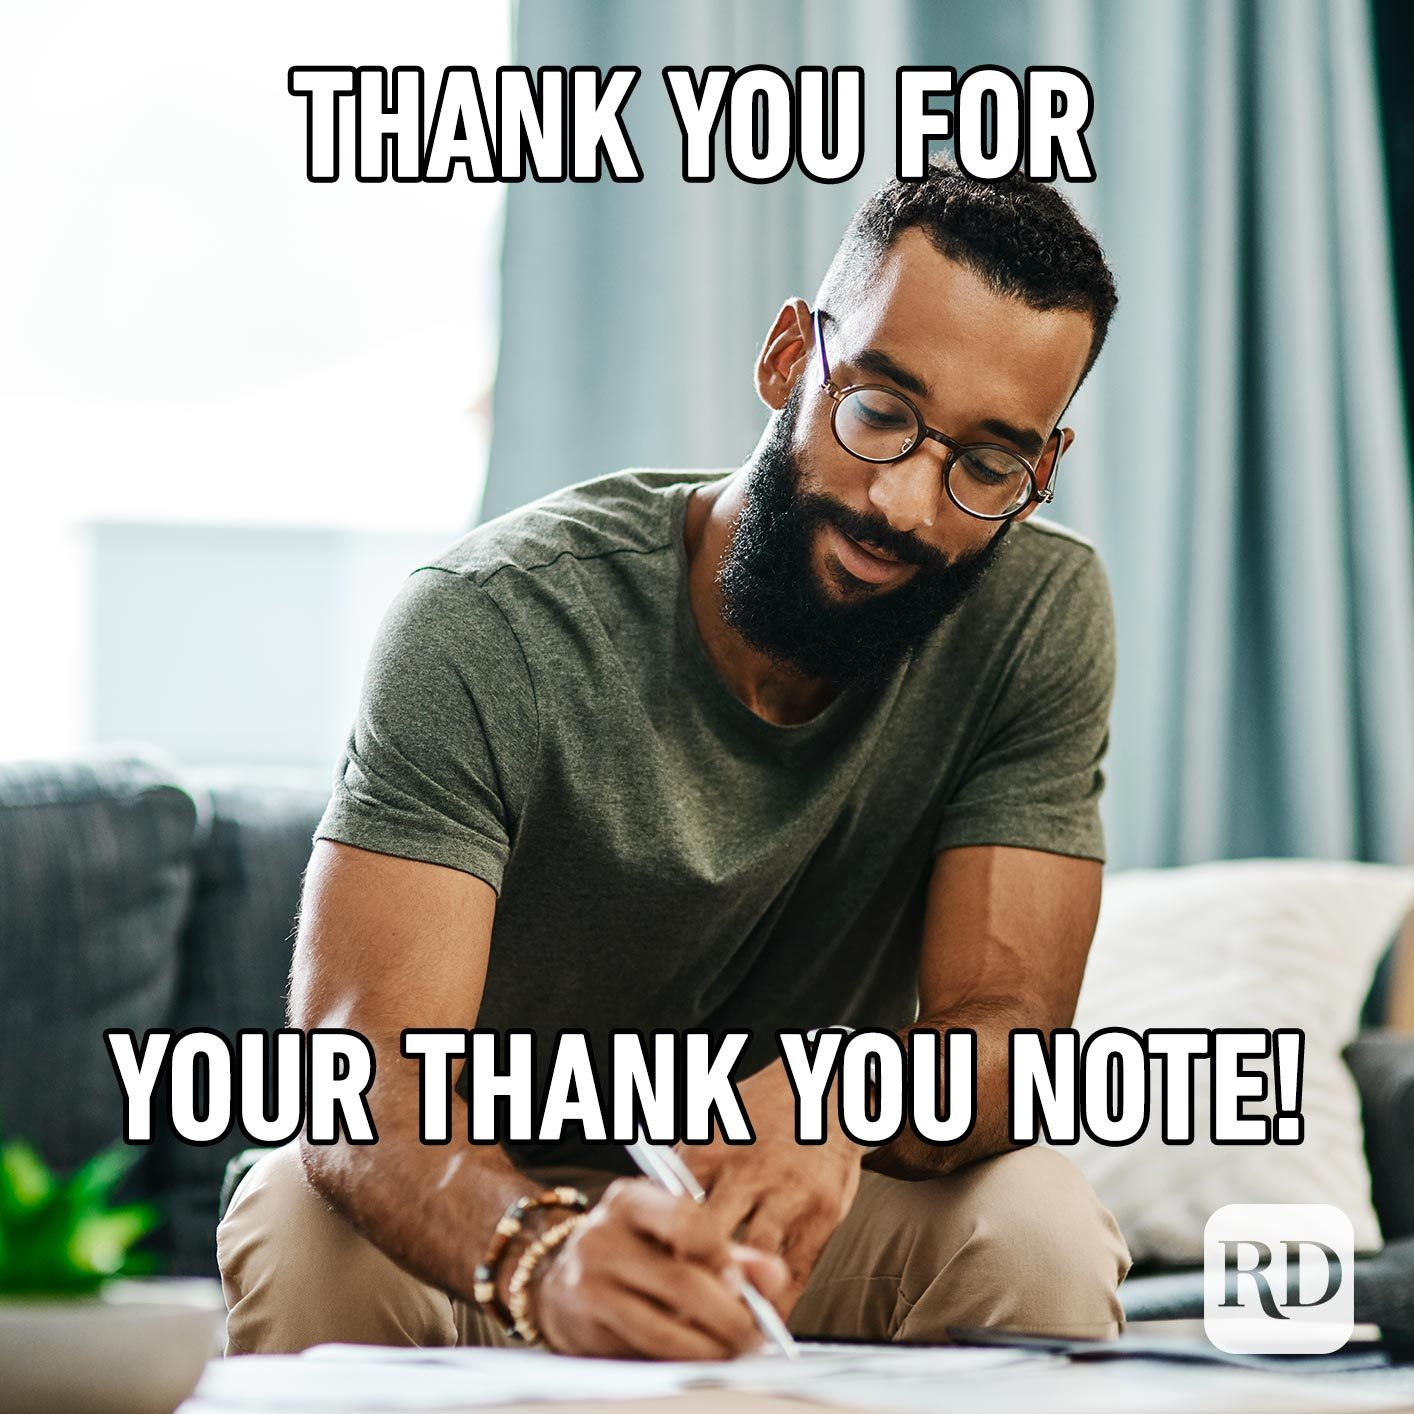 Man writing thank you note. Meme text: Thank you for your thank you note!